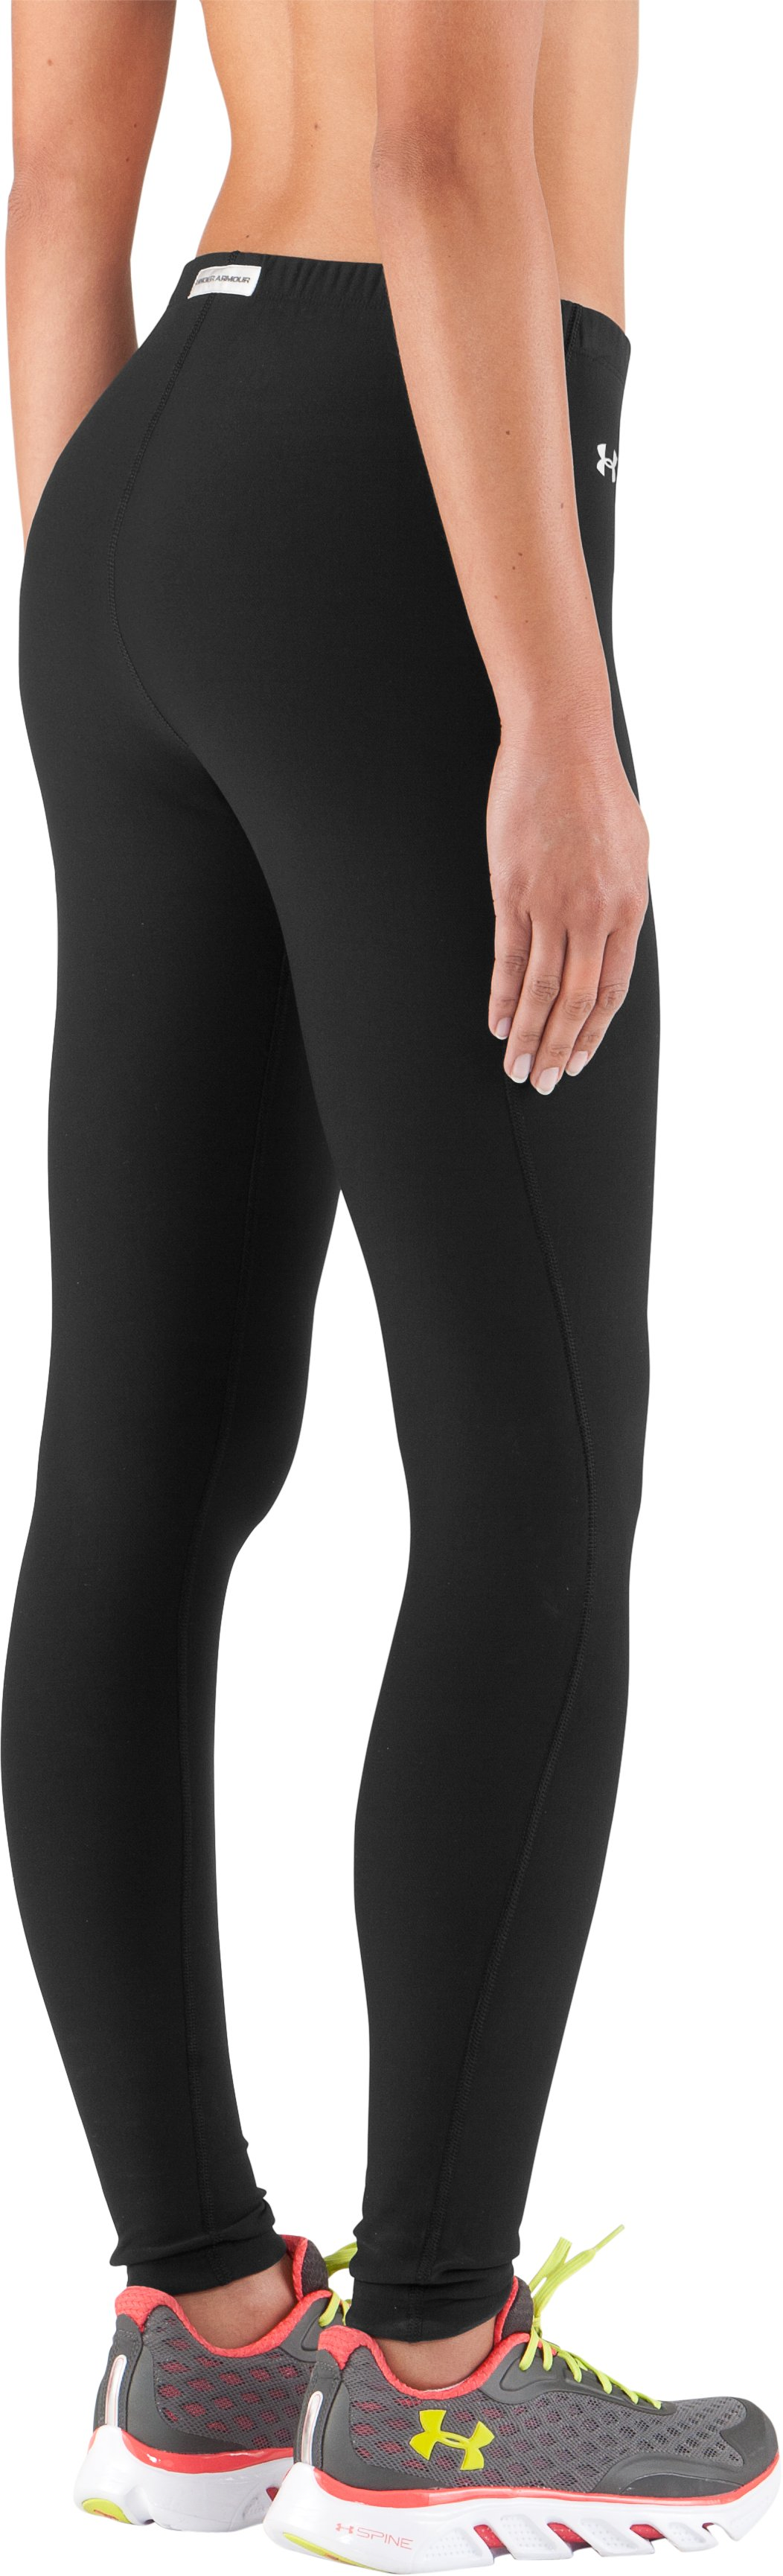 Women's ColdGear® Frosty Compression Tights, Black